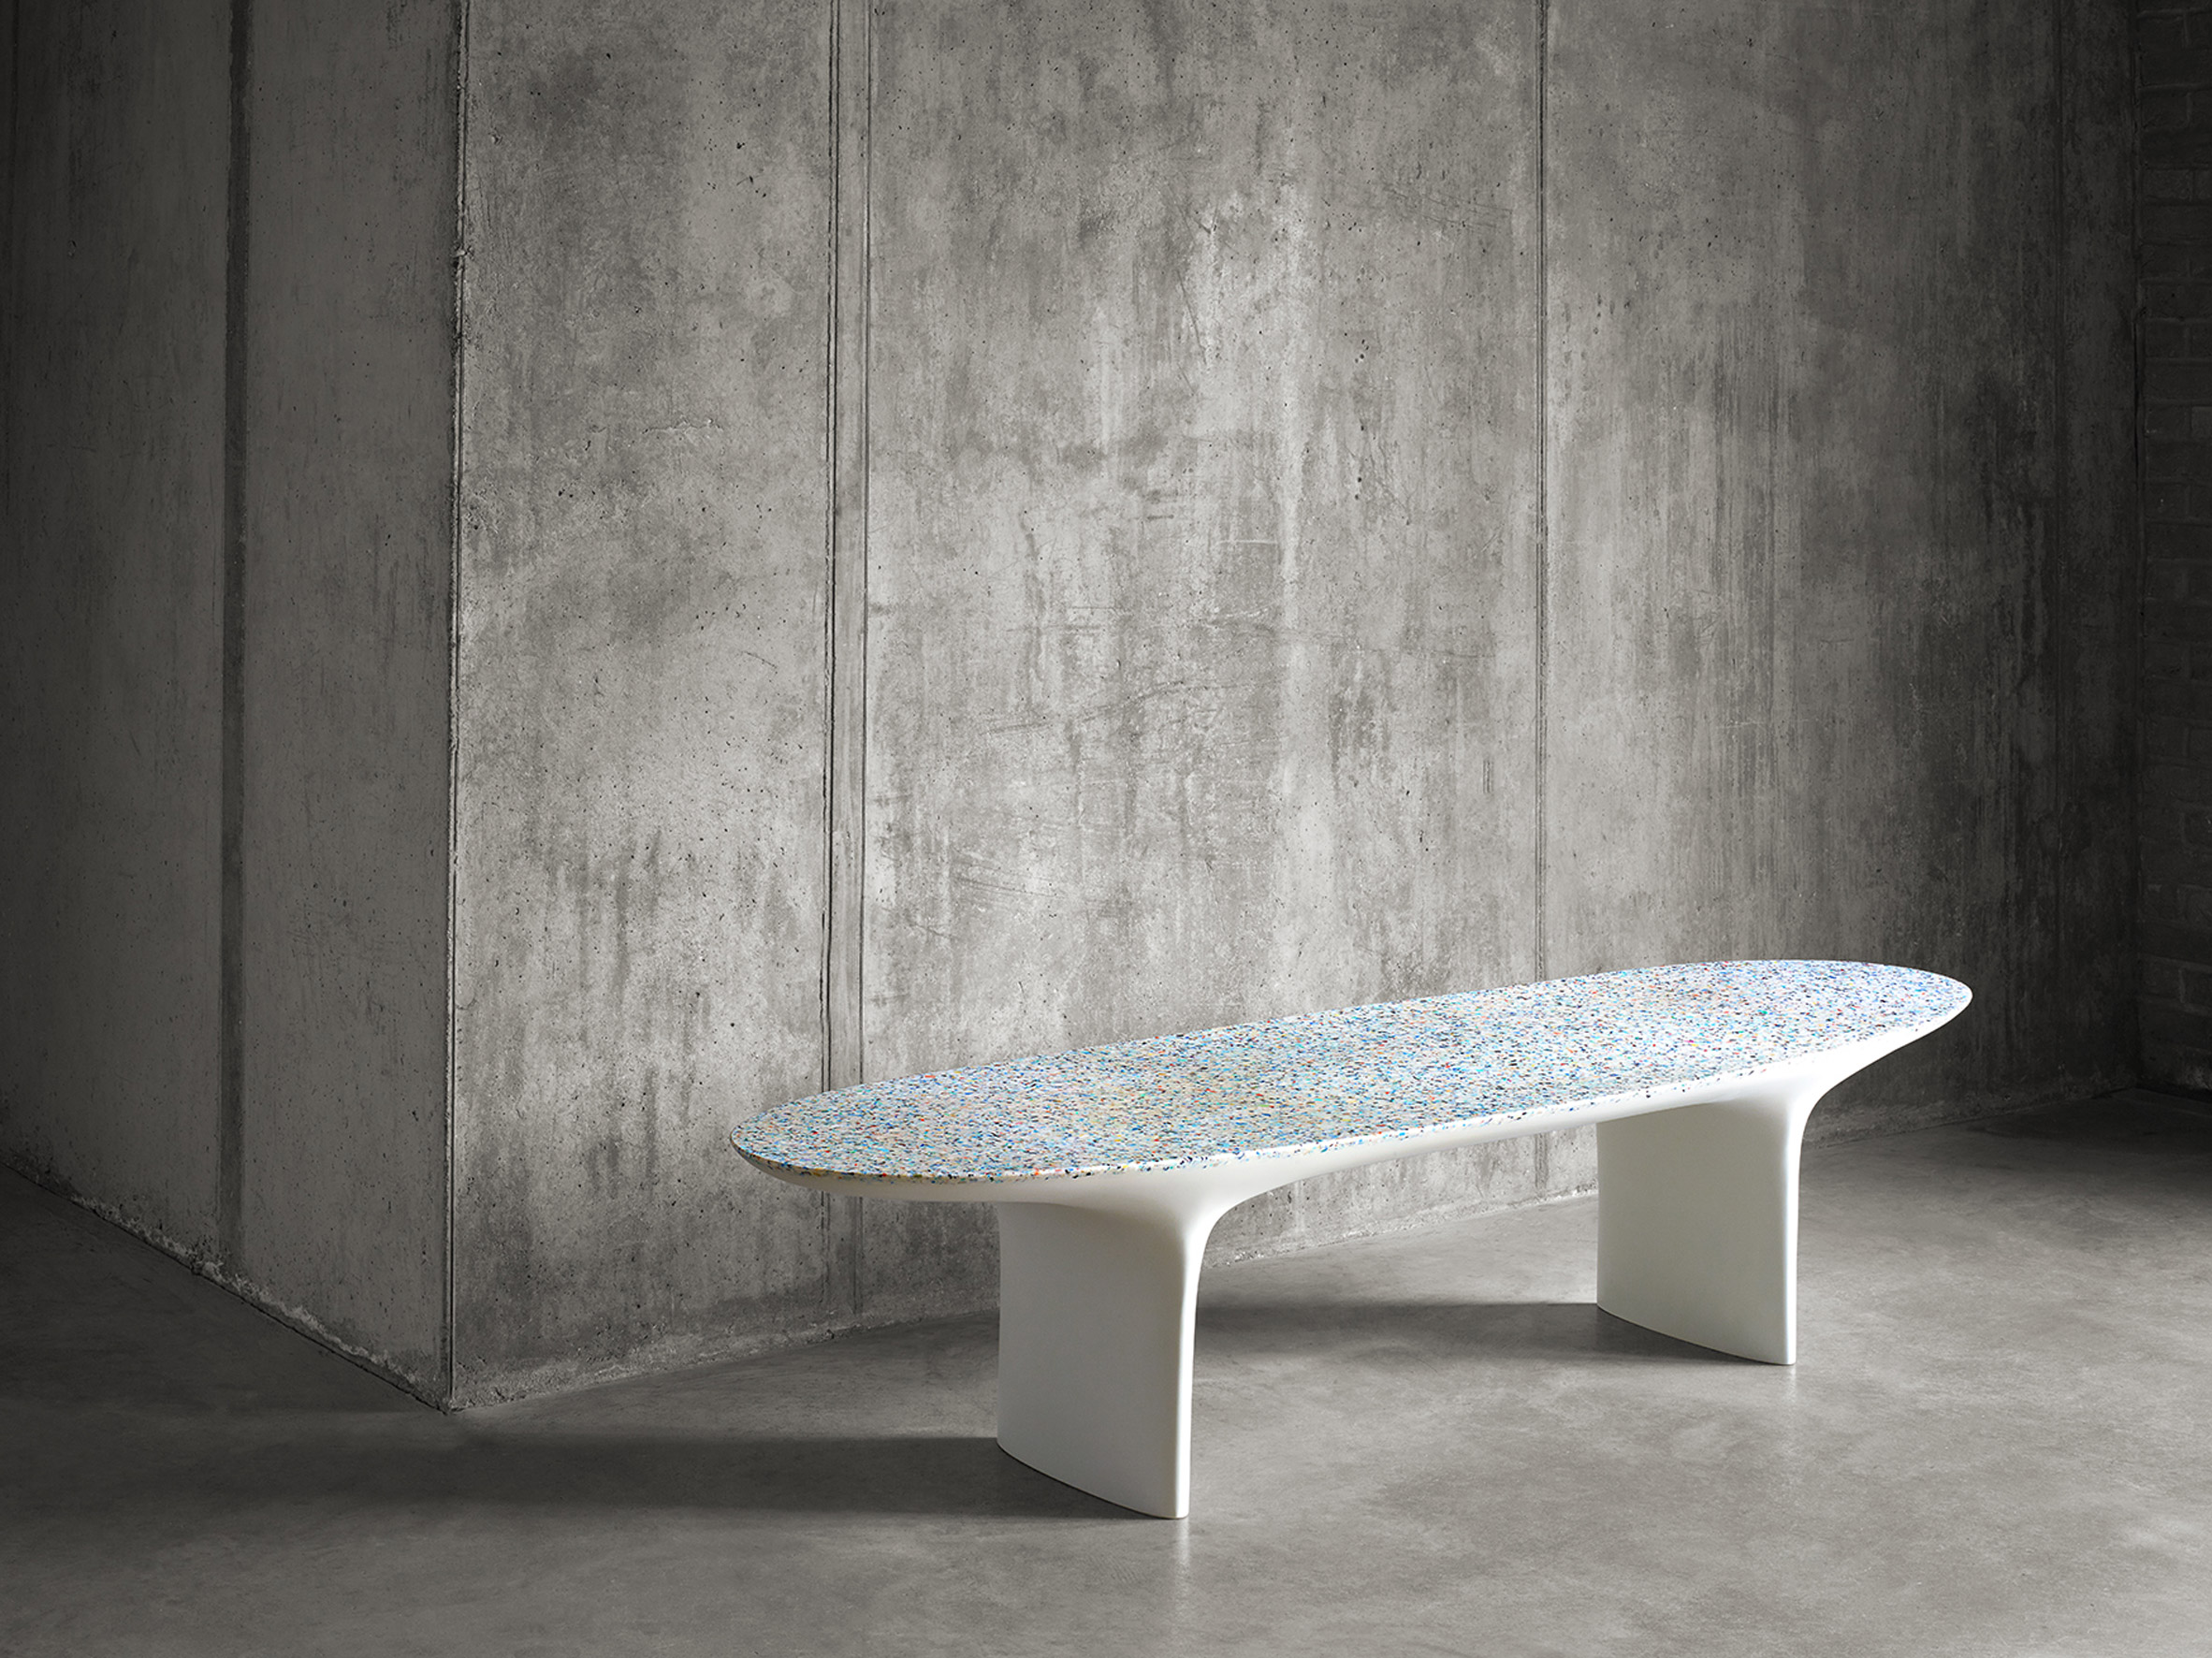 Brodie neill showcases his ocean terrazzo with waterfall for Waterfall installation